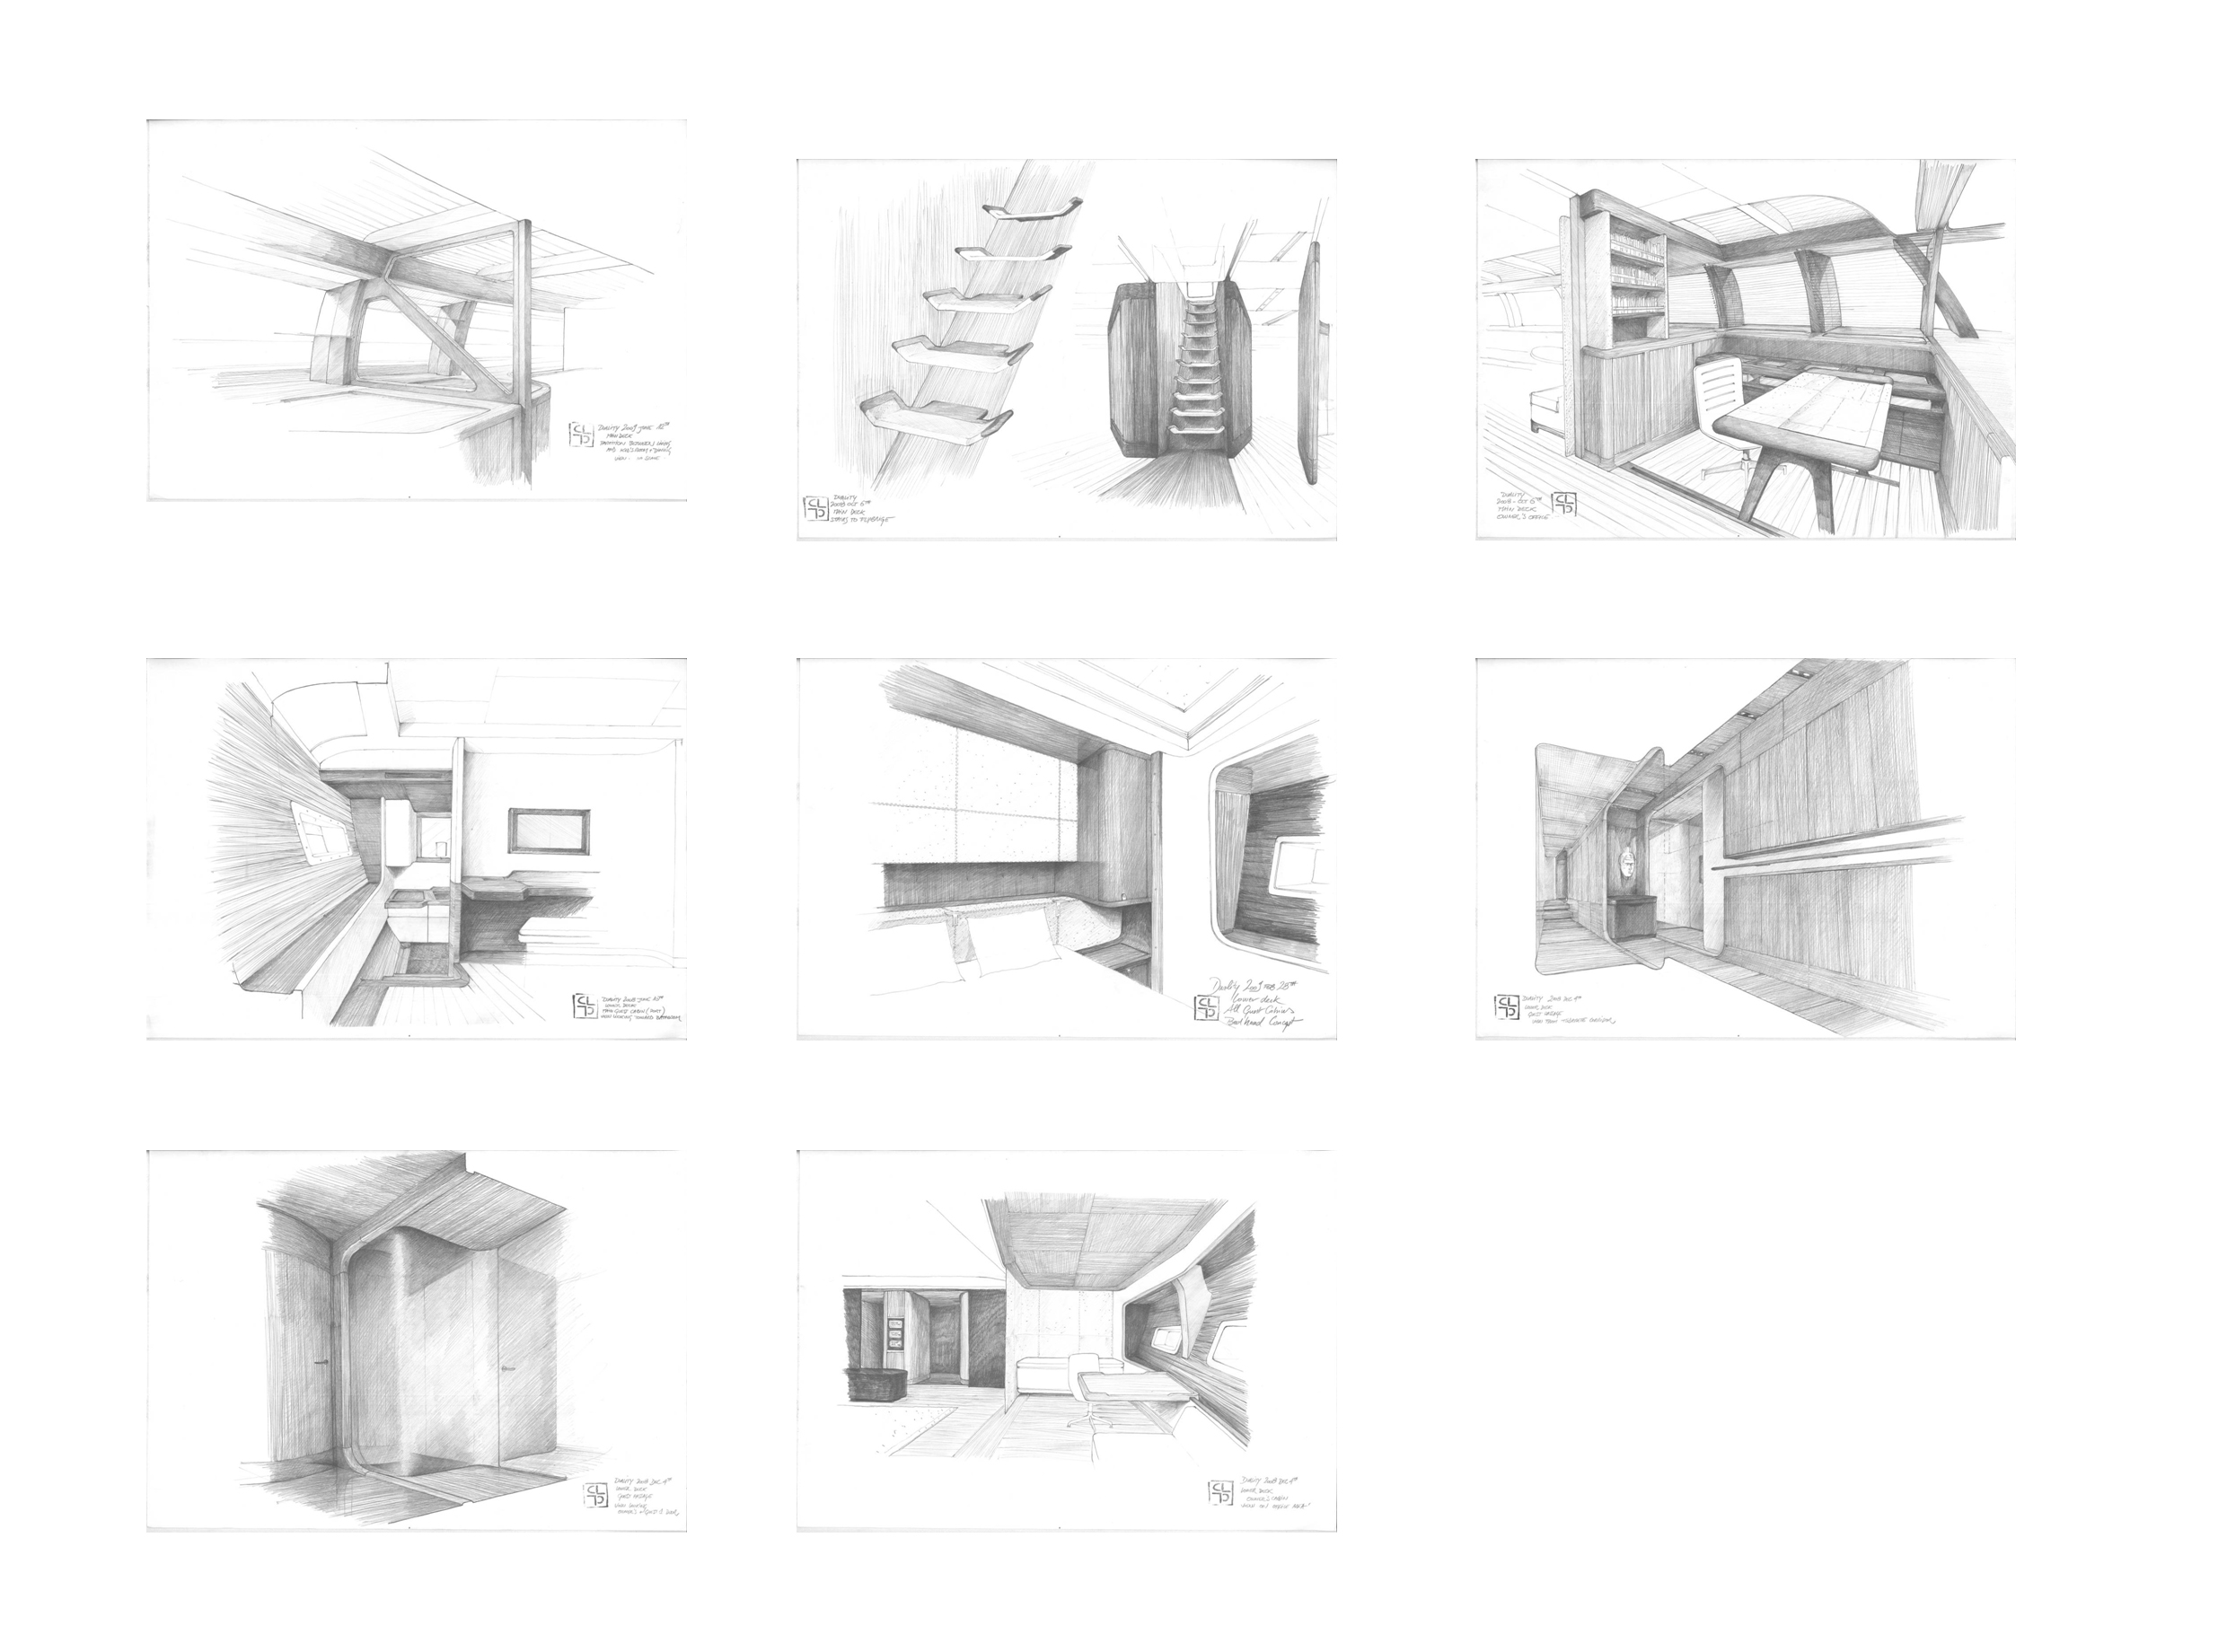 Christian liaigre drawings of the interior sailing yacht vertigo in construction at alloy for Construction drawings and details for interiors